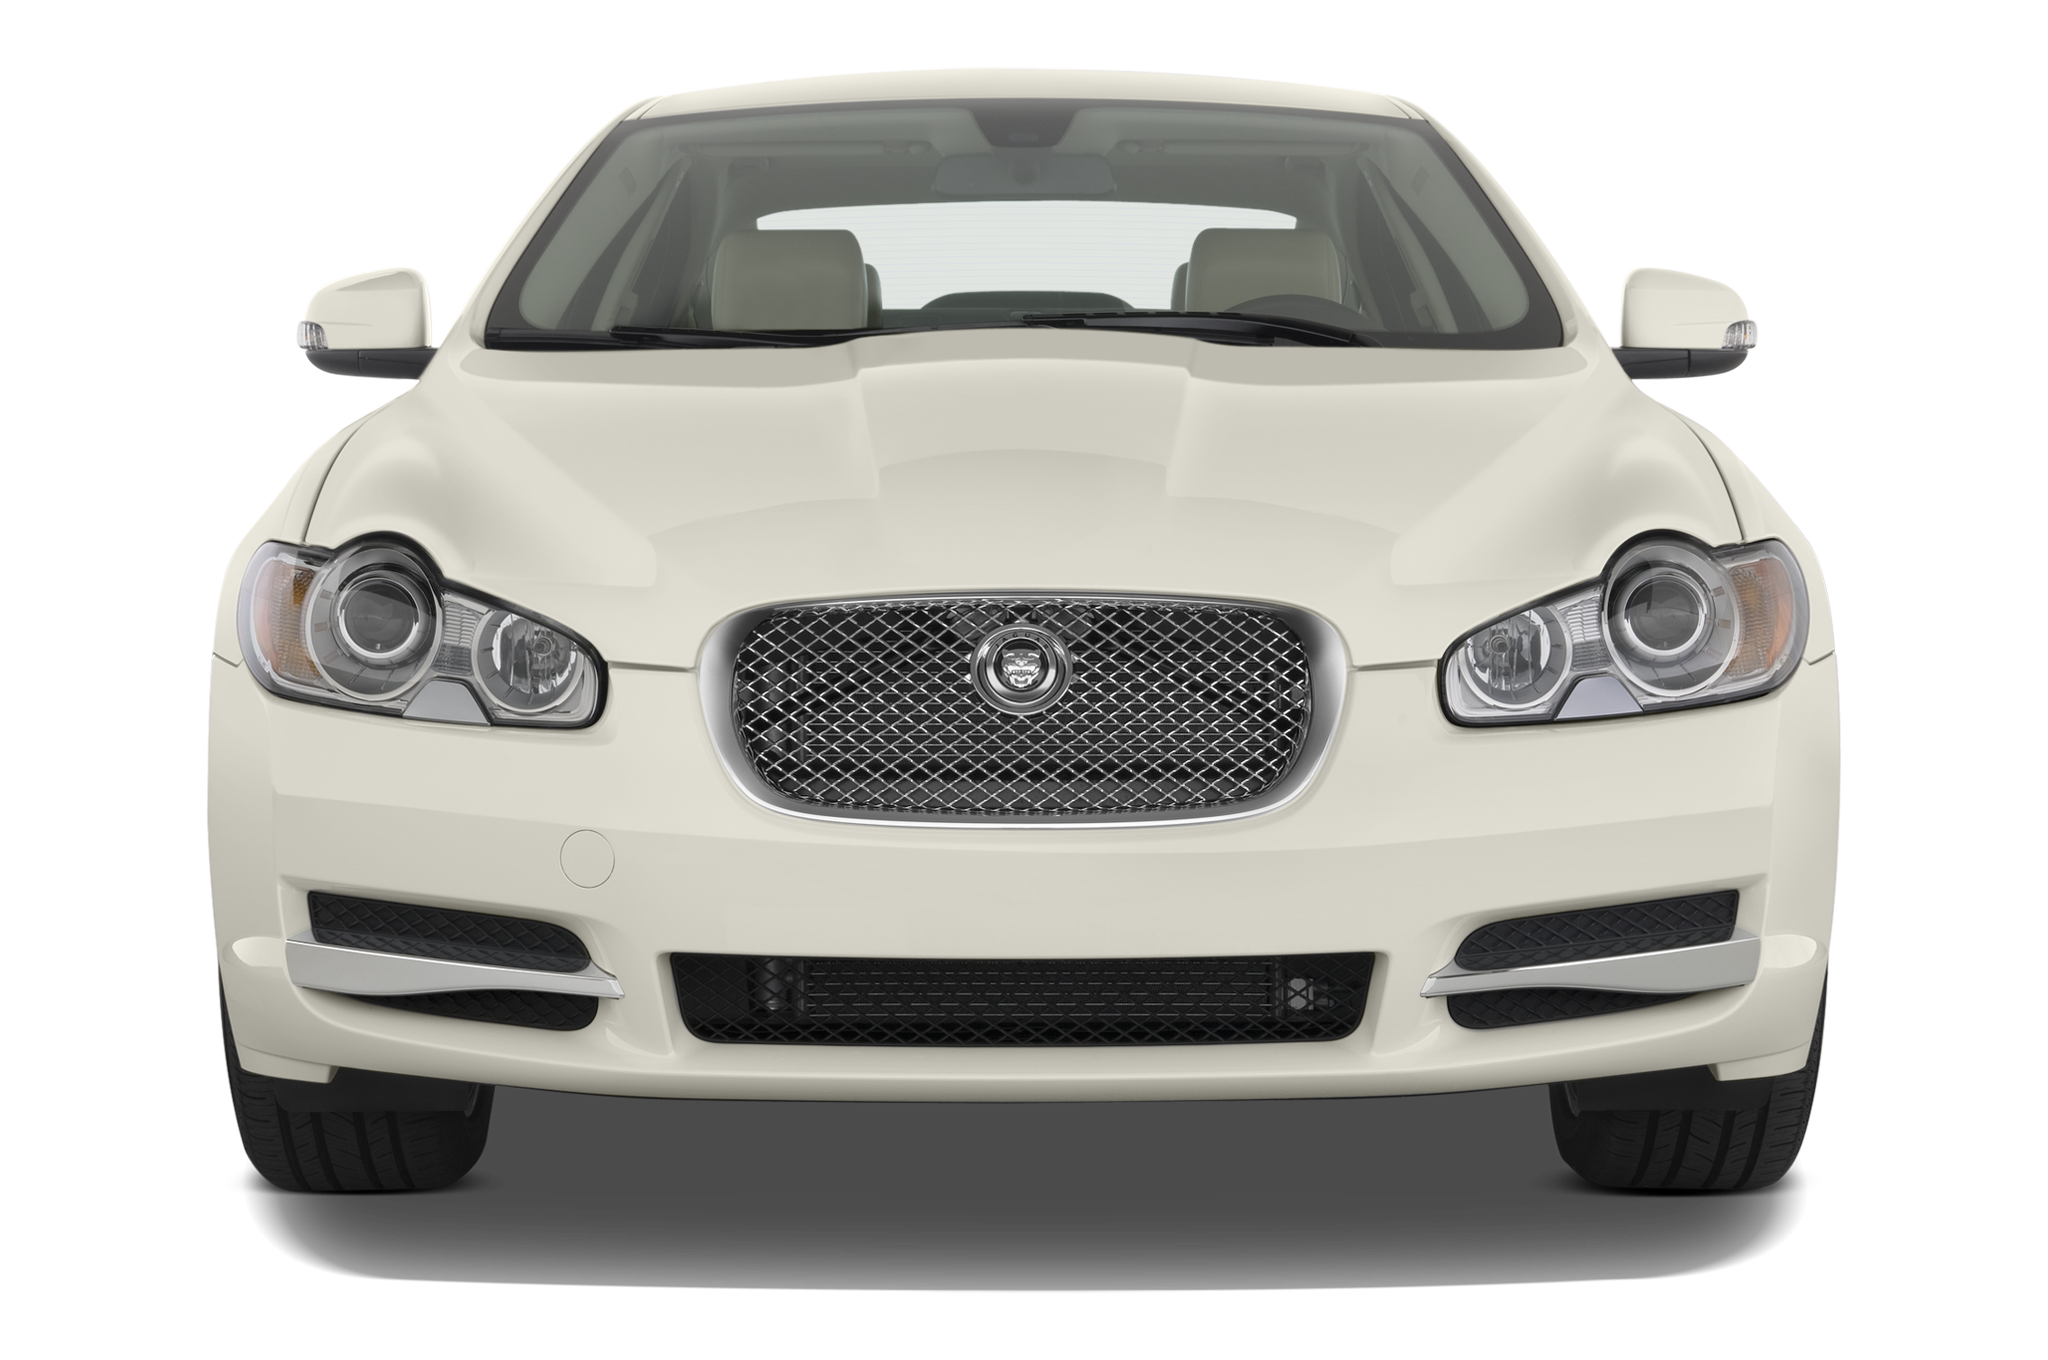 2010 jaguar xf premium jaguar luxury sedan review automobile magazine. Black Bedroom Furniture Sets. Home Design Ideas